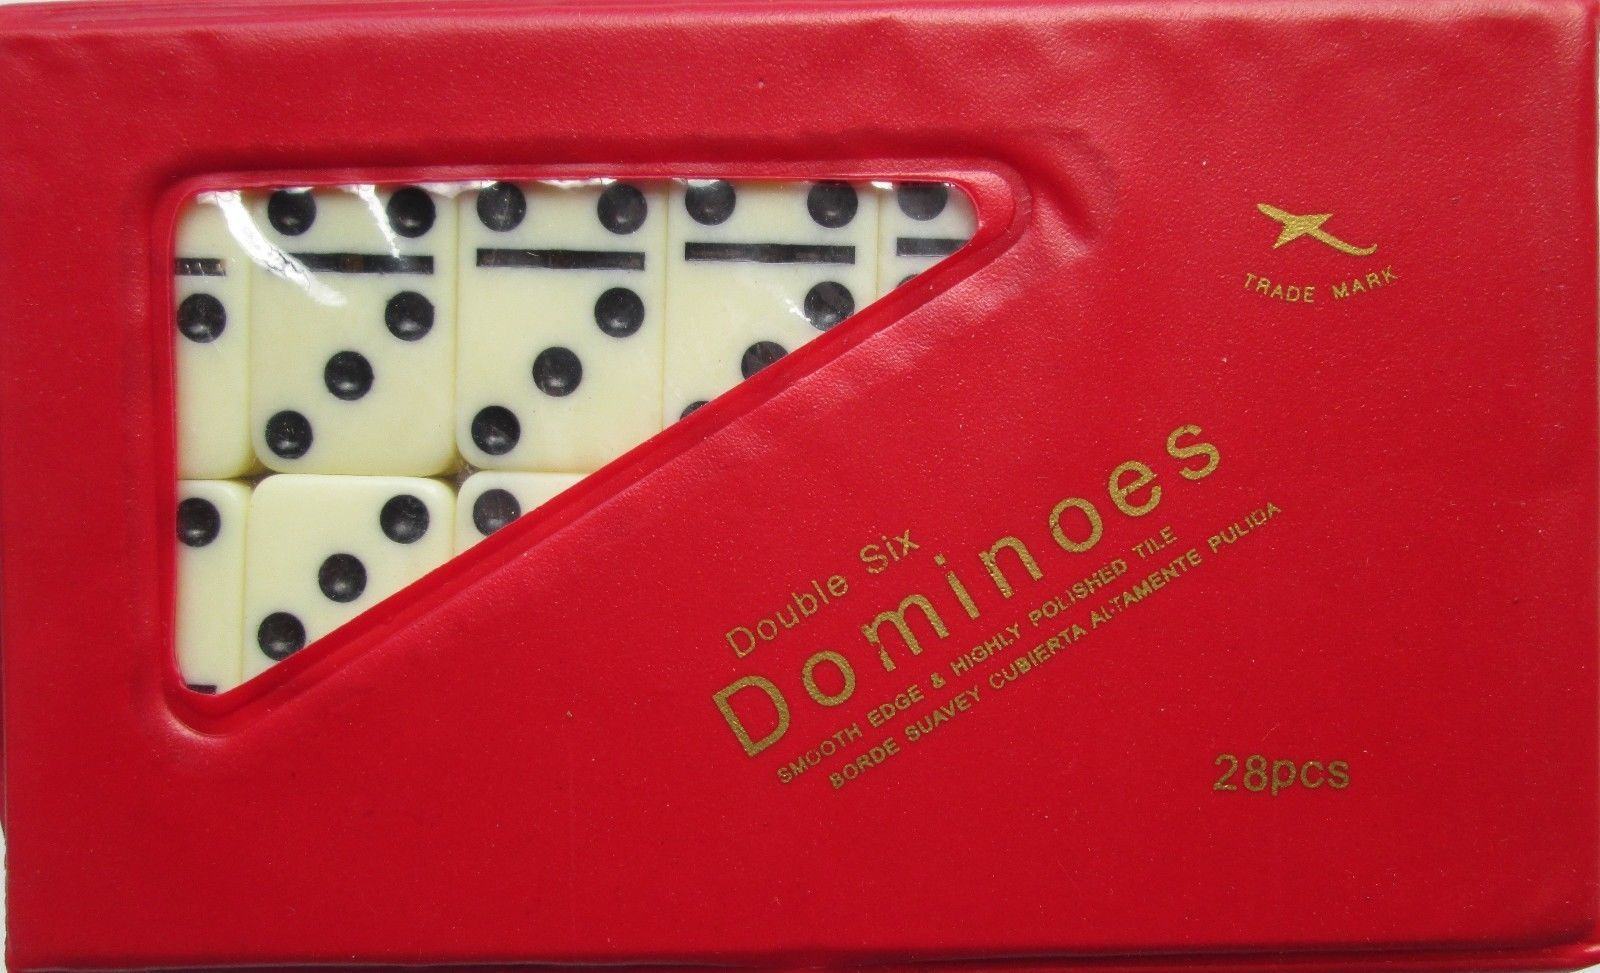 Double Six Mini Dominoes Dominos Set of 28 Ivory Color Tiles with Red Case